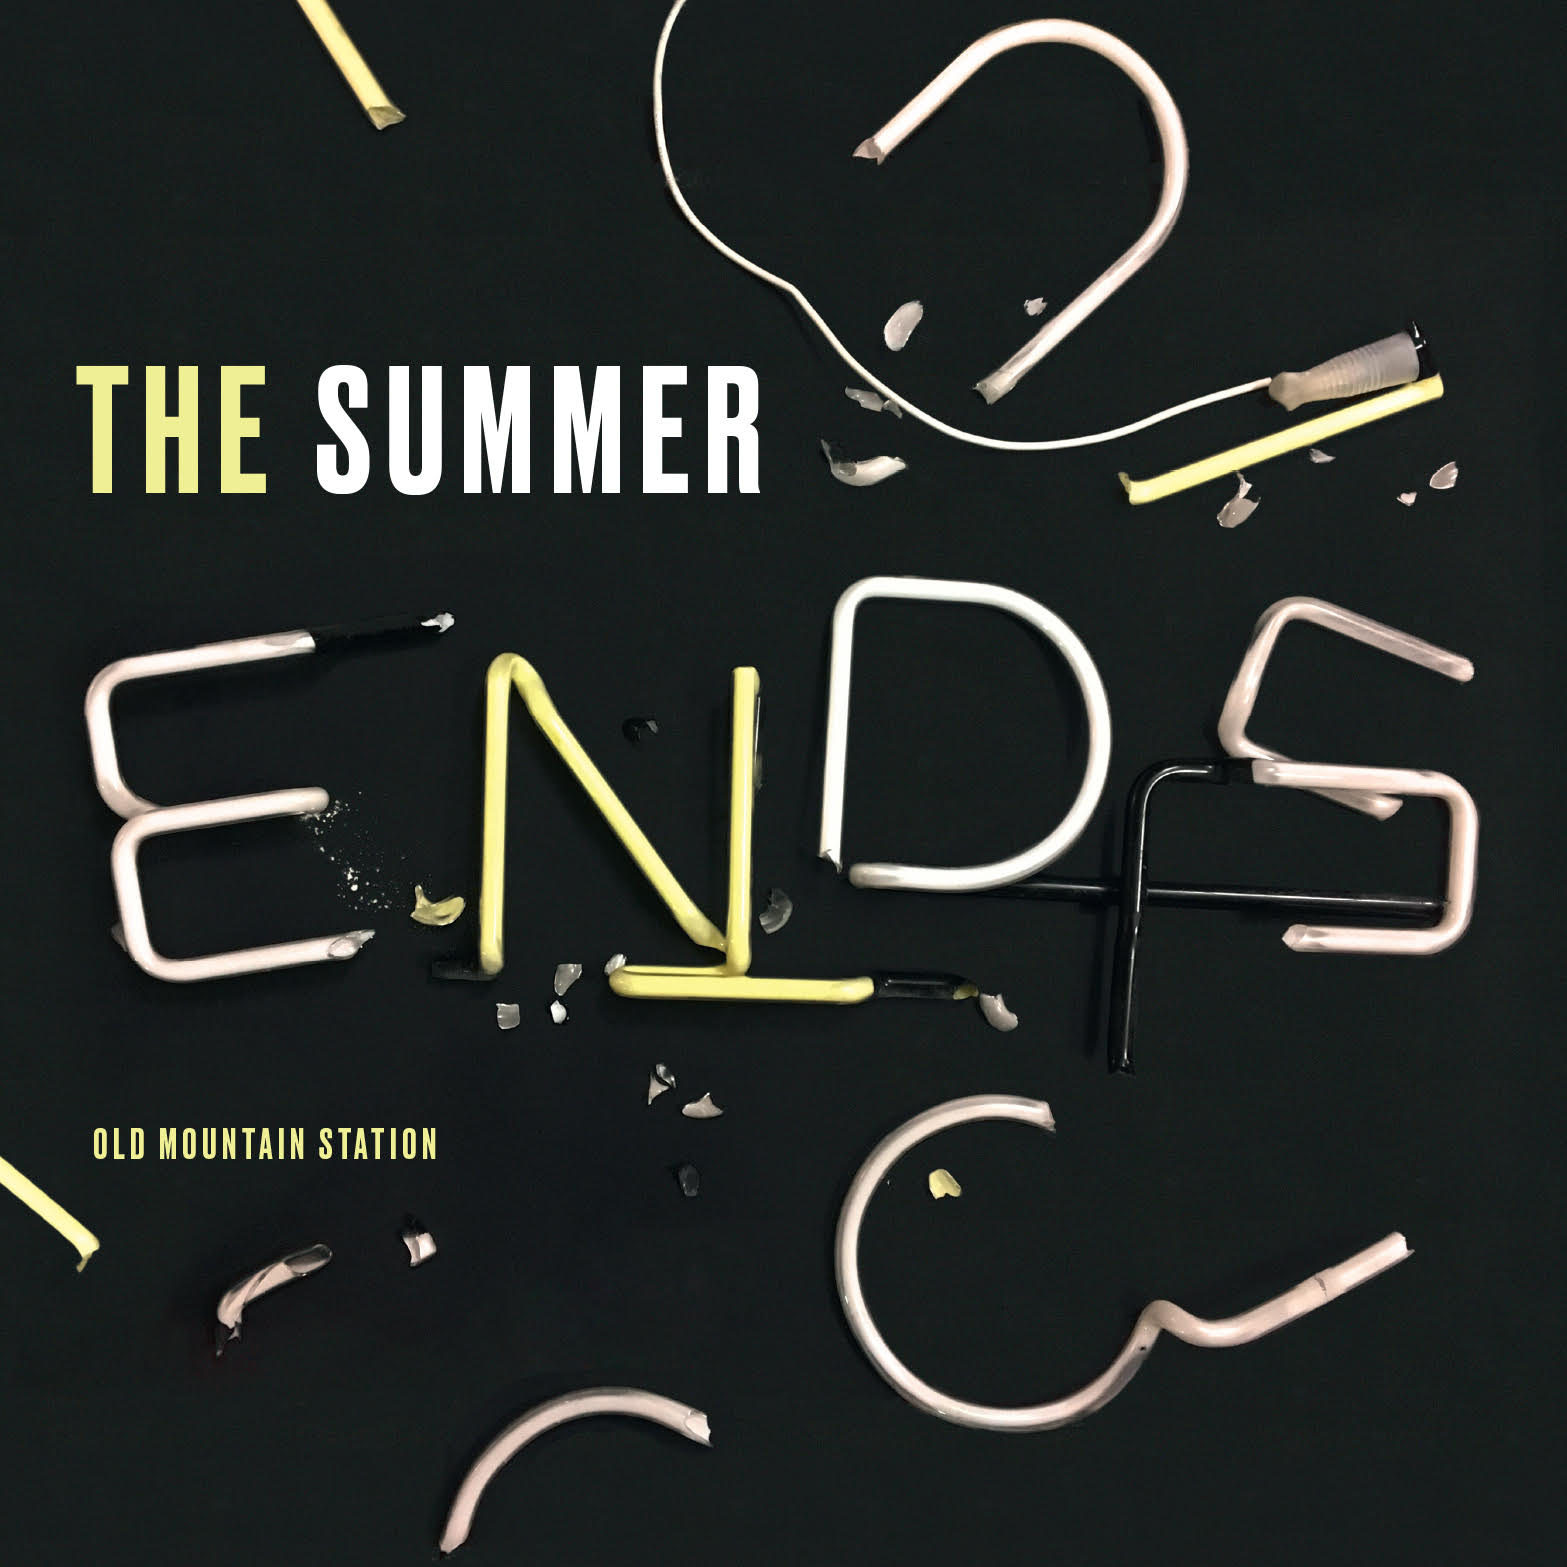 The Summer Ends Image